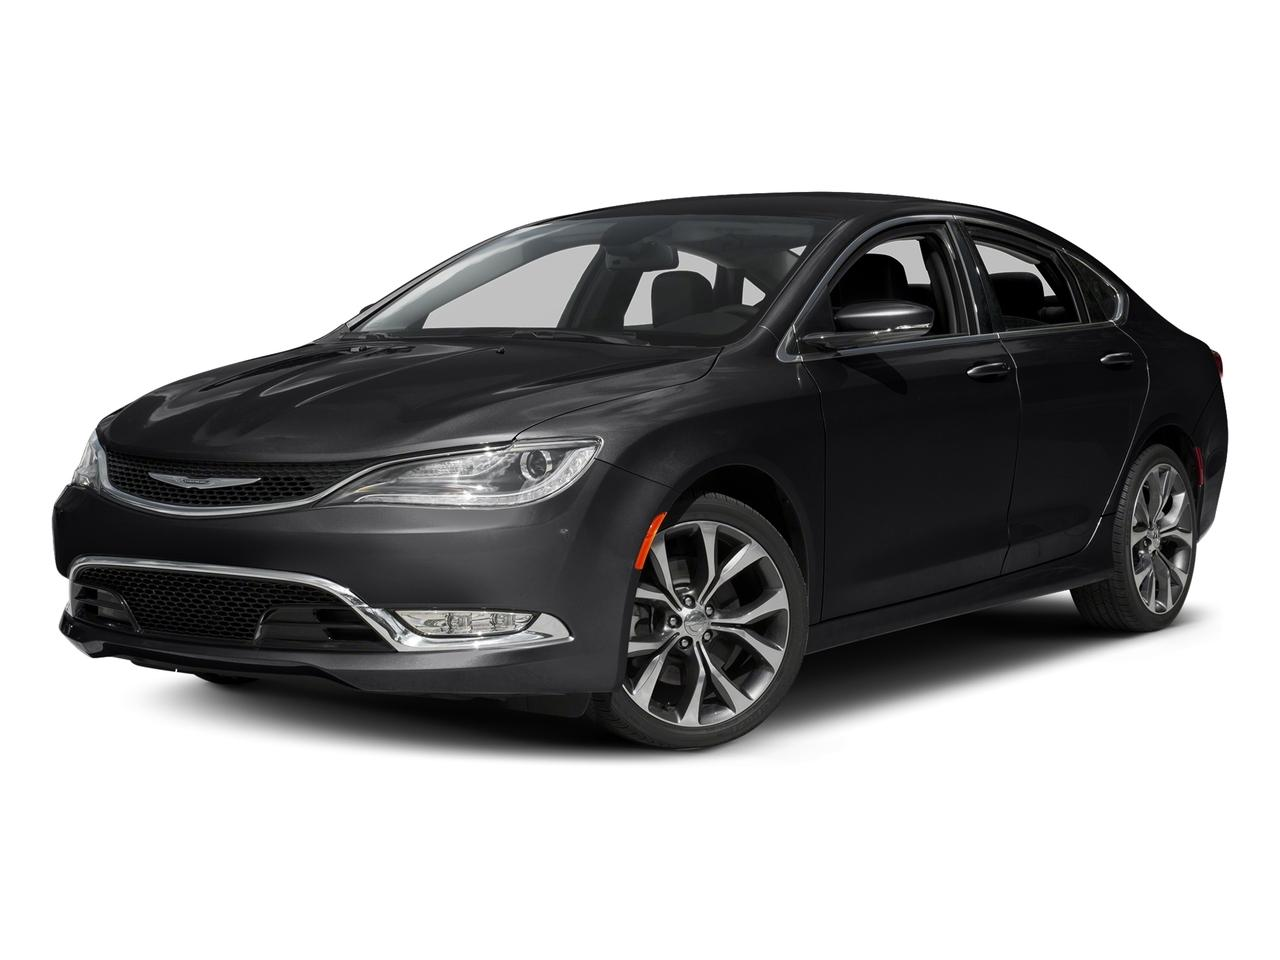 2016 Chrysler 200 Vehicle Photo in Peoria, IL 61615